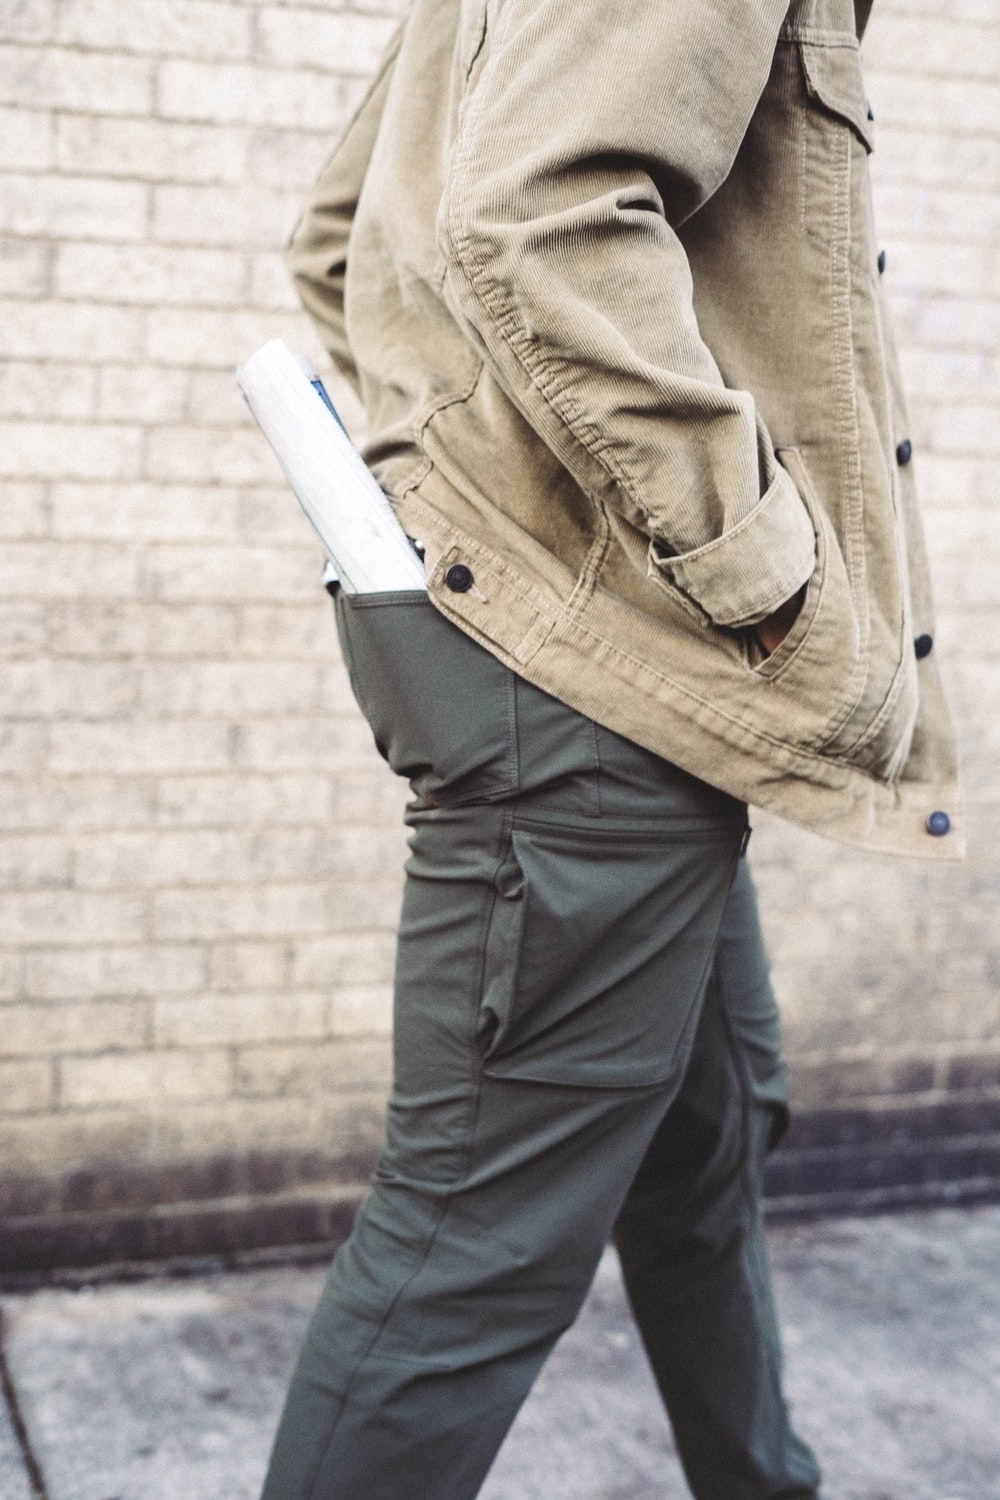 man walking hand on jacket's pocket with rolled paper on pants back pocket